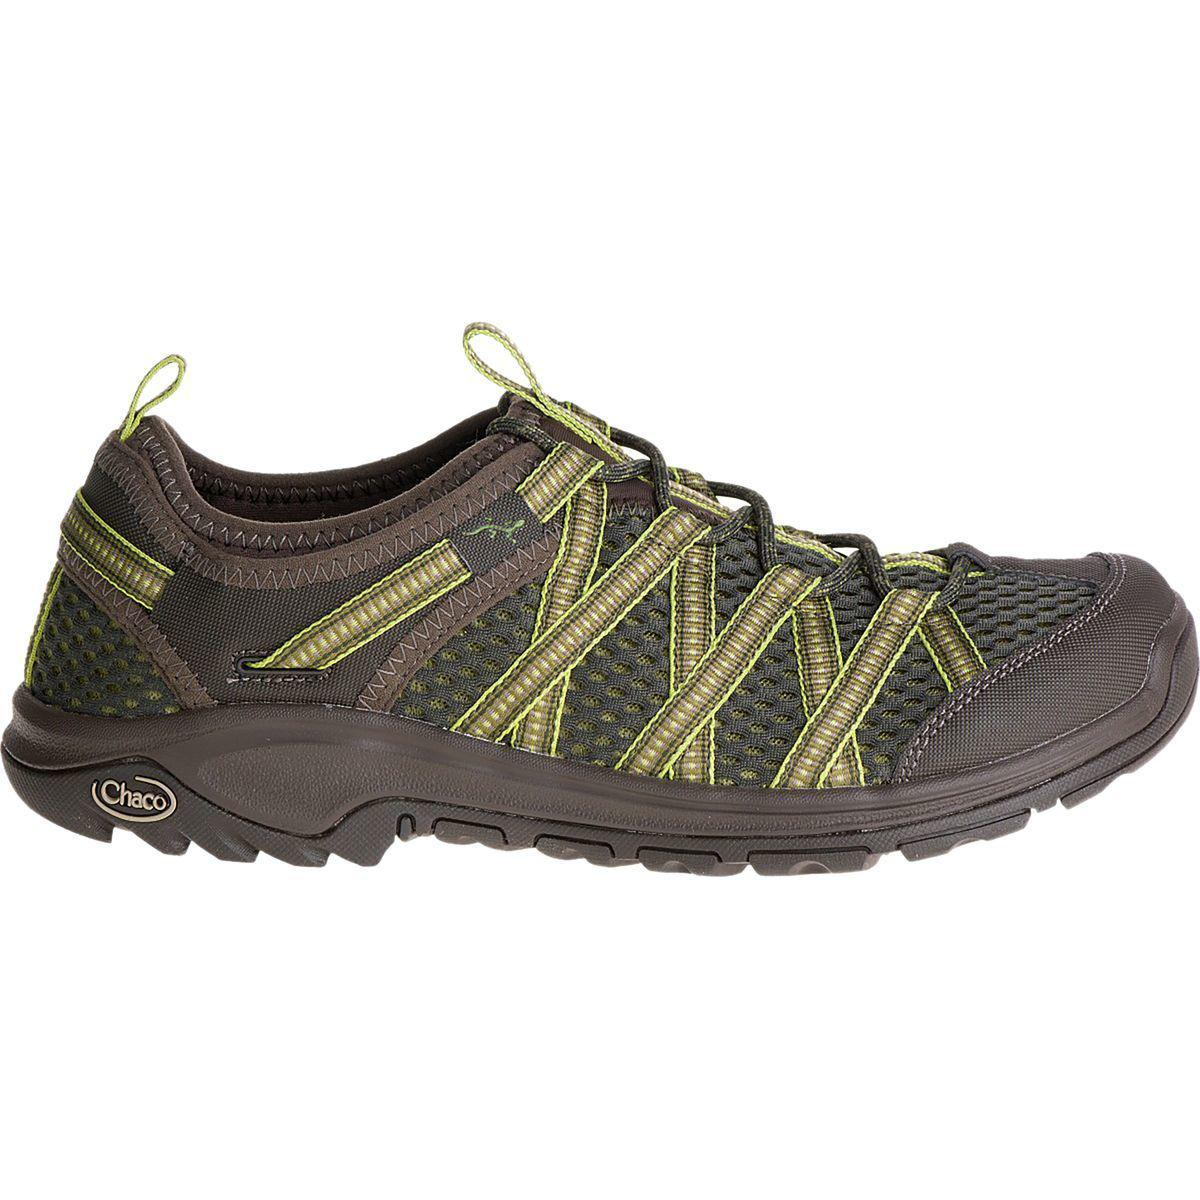 9a8c608c053f Lyst - Chaco Outcross Evo 2 Water Shoe in Green for Men